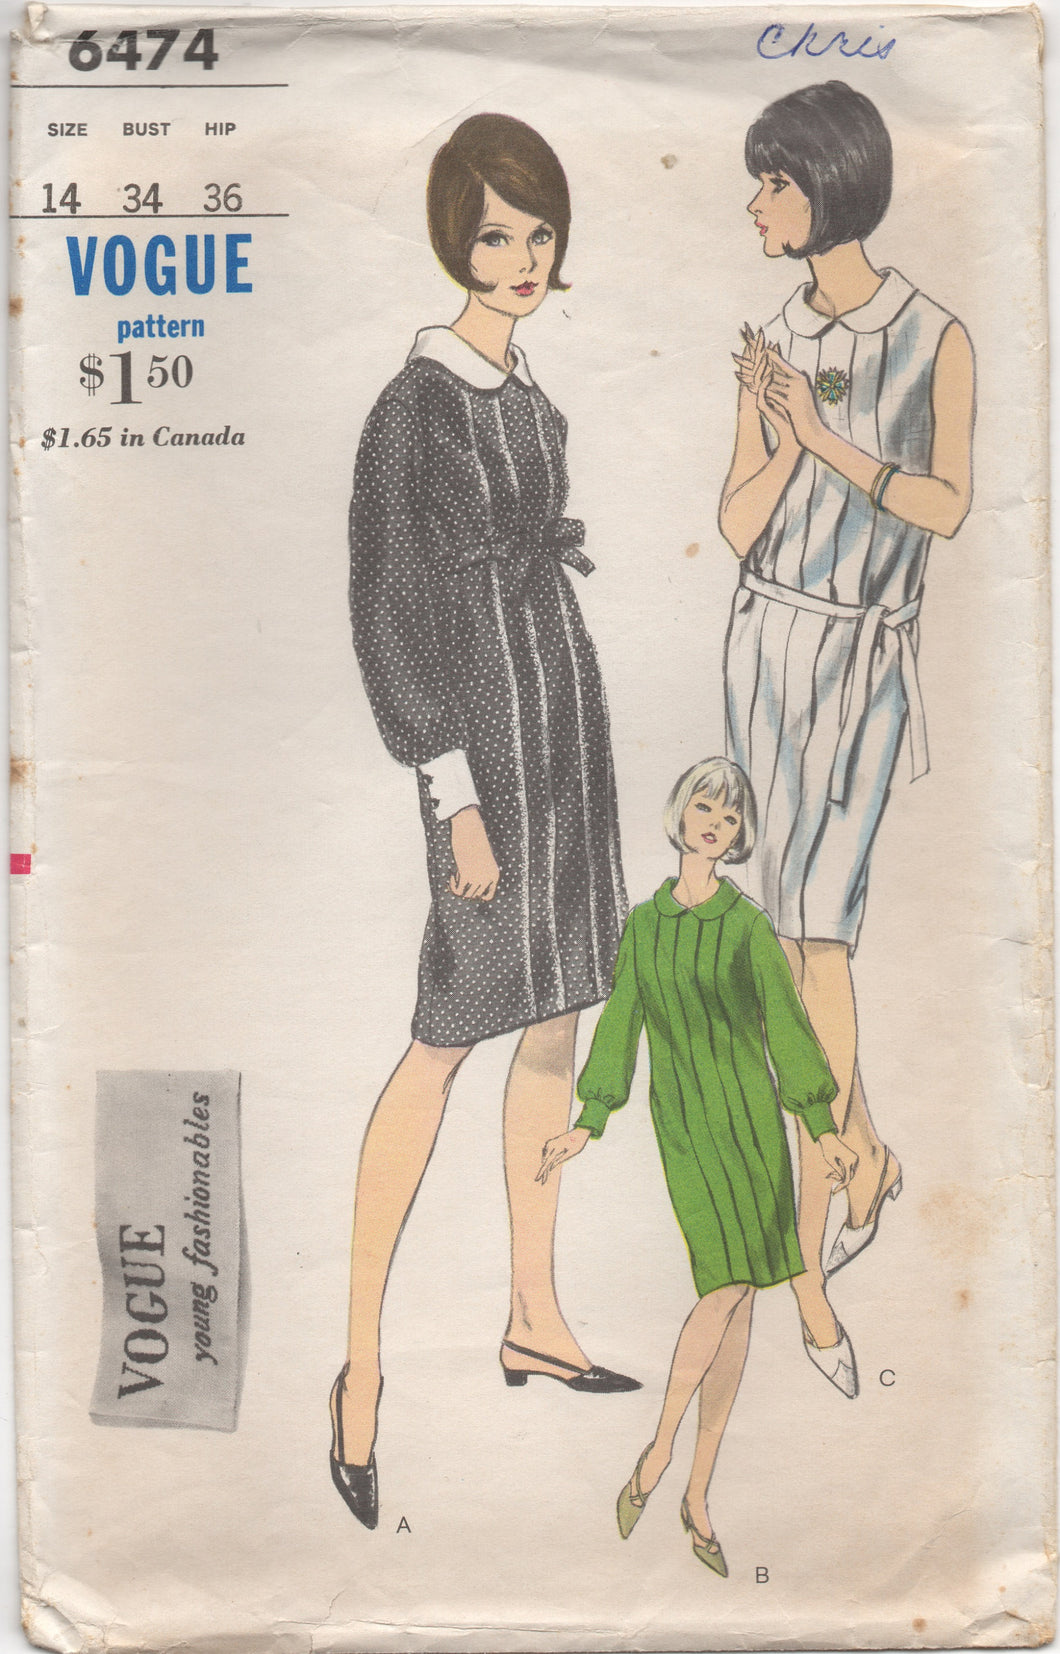 1960's Vogue One Piece Shift Dress with Pleats and Belt - Bust 34